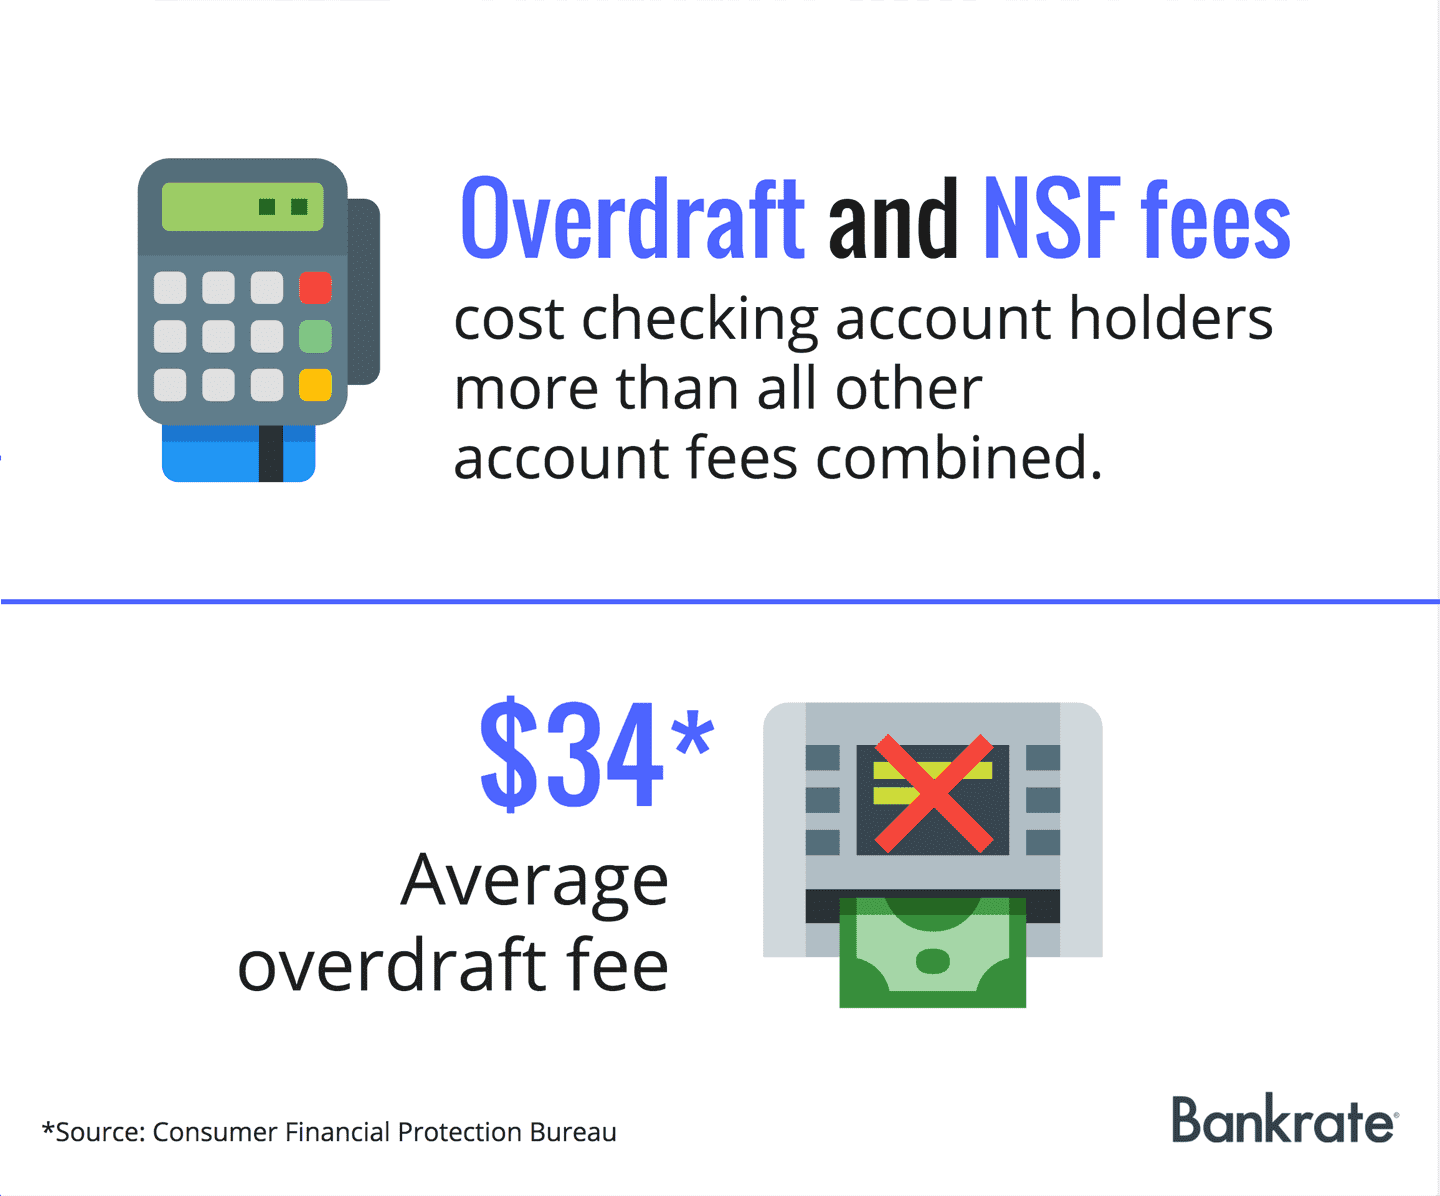 Overdraft and NSF fees cost checking account holders more than all other account fees combined